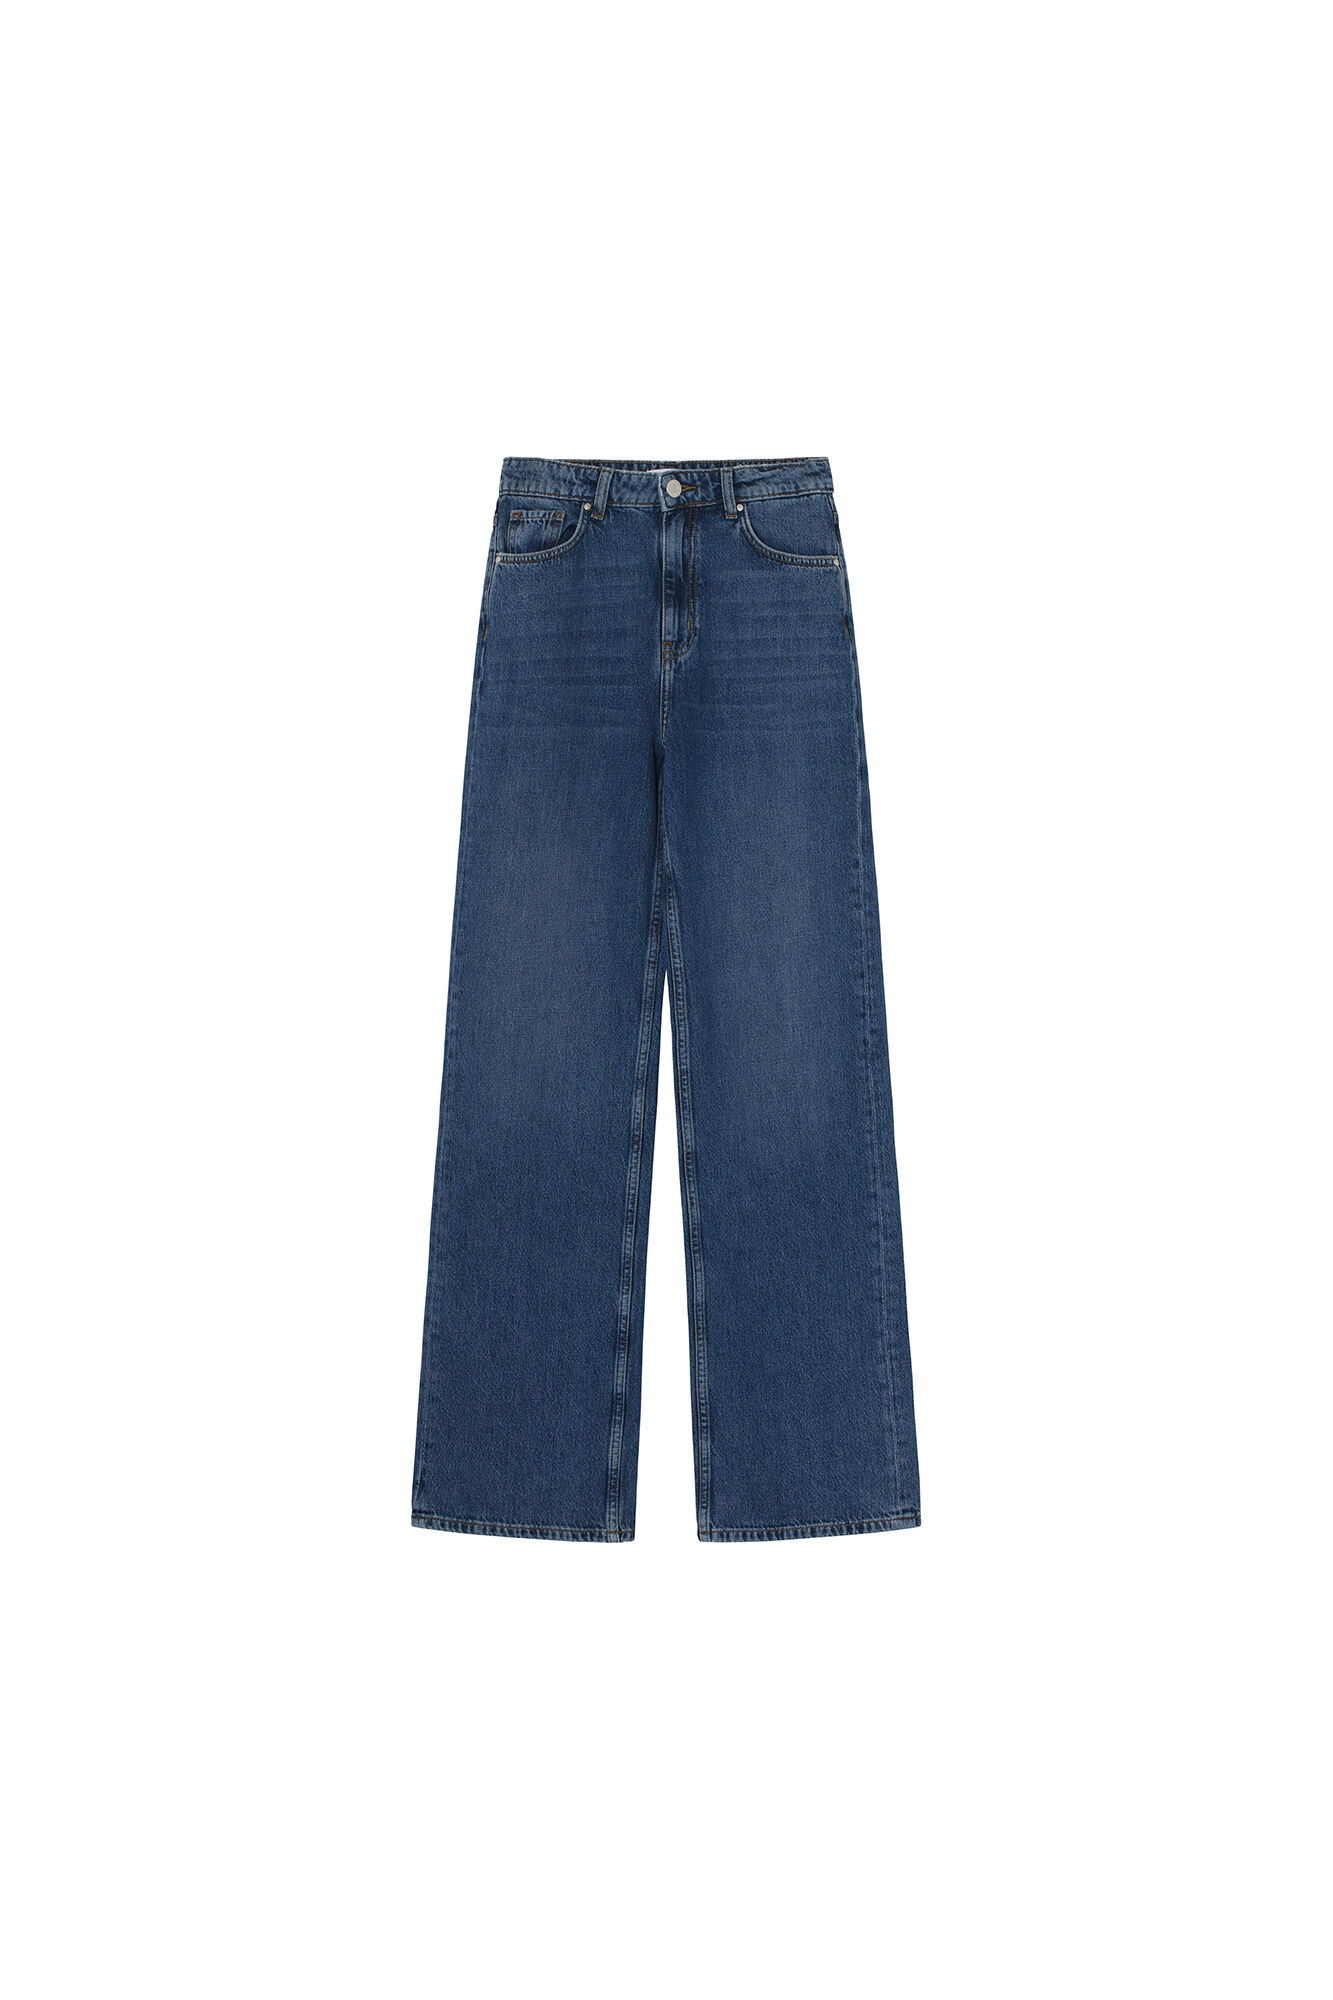 ENBREE JEANS 6801, WORN DARK BLUE